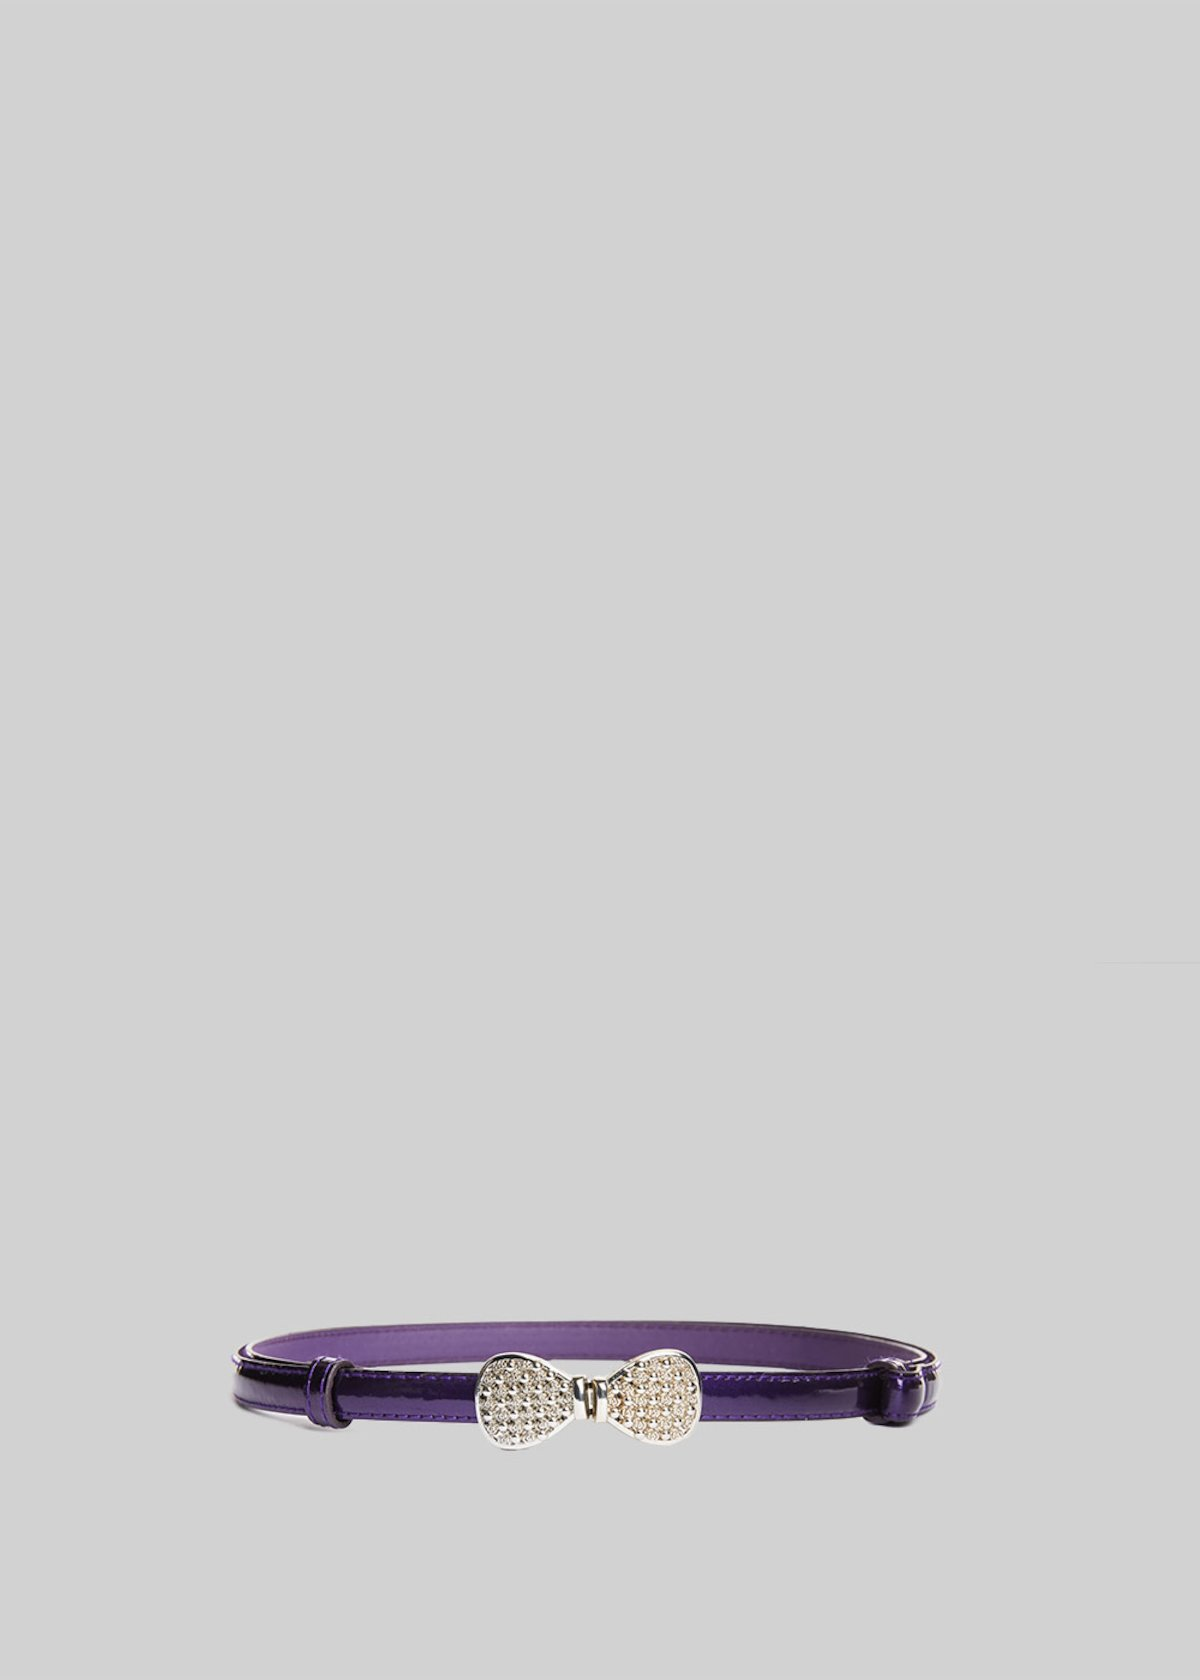 Cuala belt of painted eco-leather with silver bow - Violet - Woman - Category image